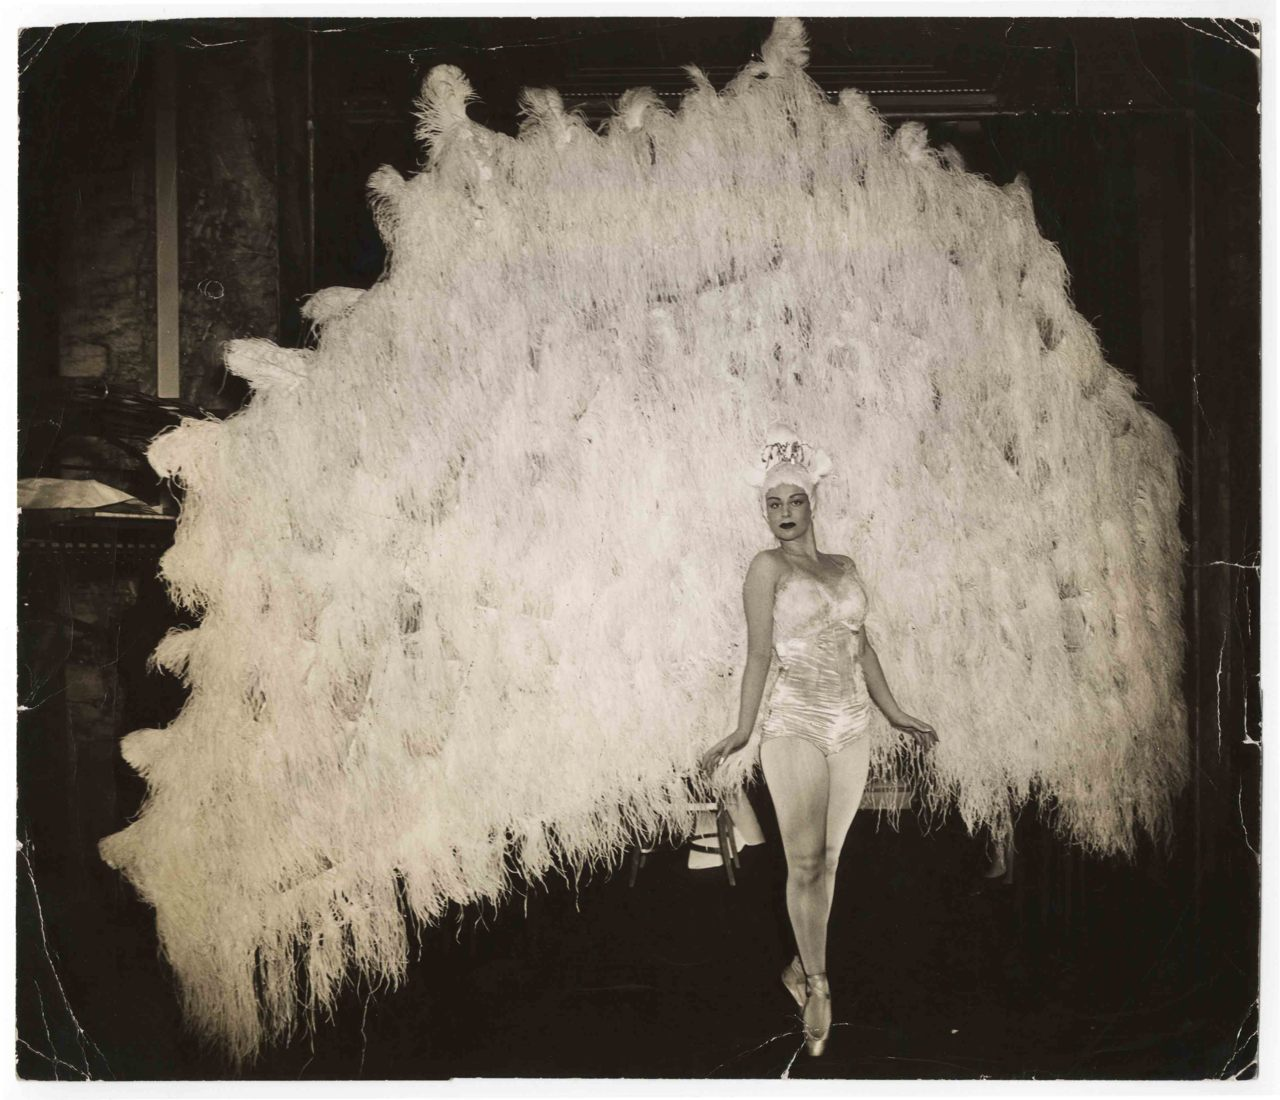 Ballerina Marina Franca in her peacock costume, April 18, 1941 photographed by Weegee